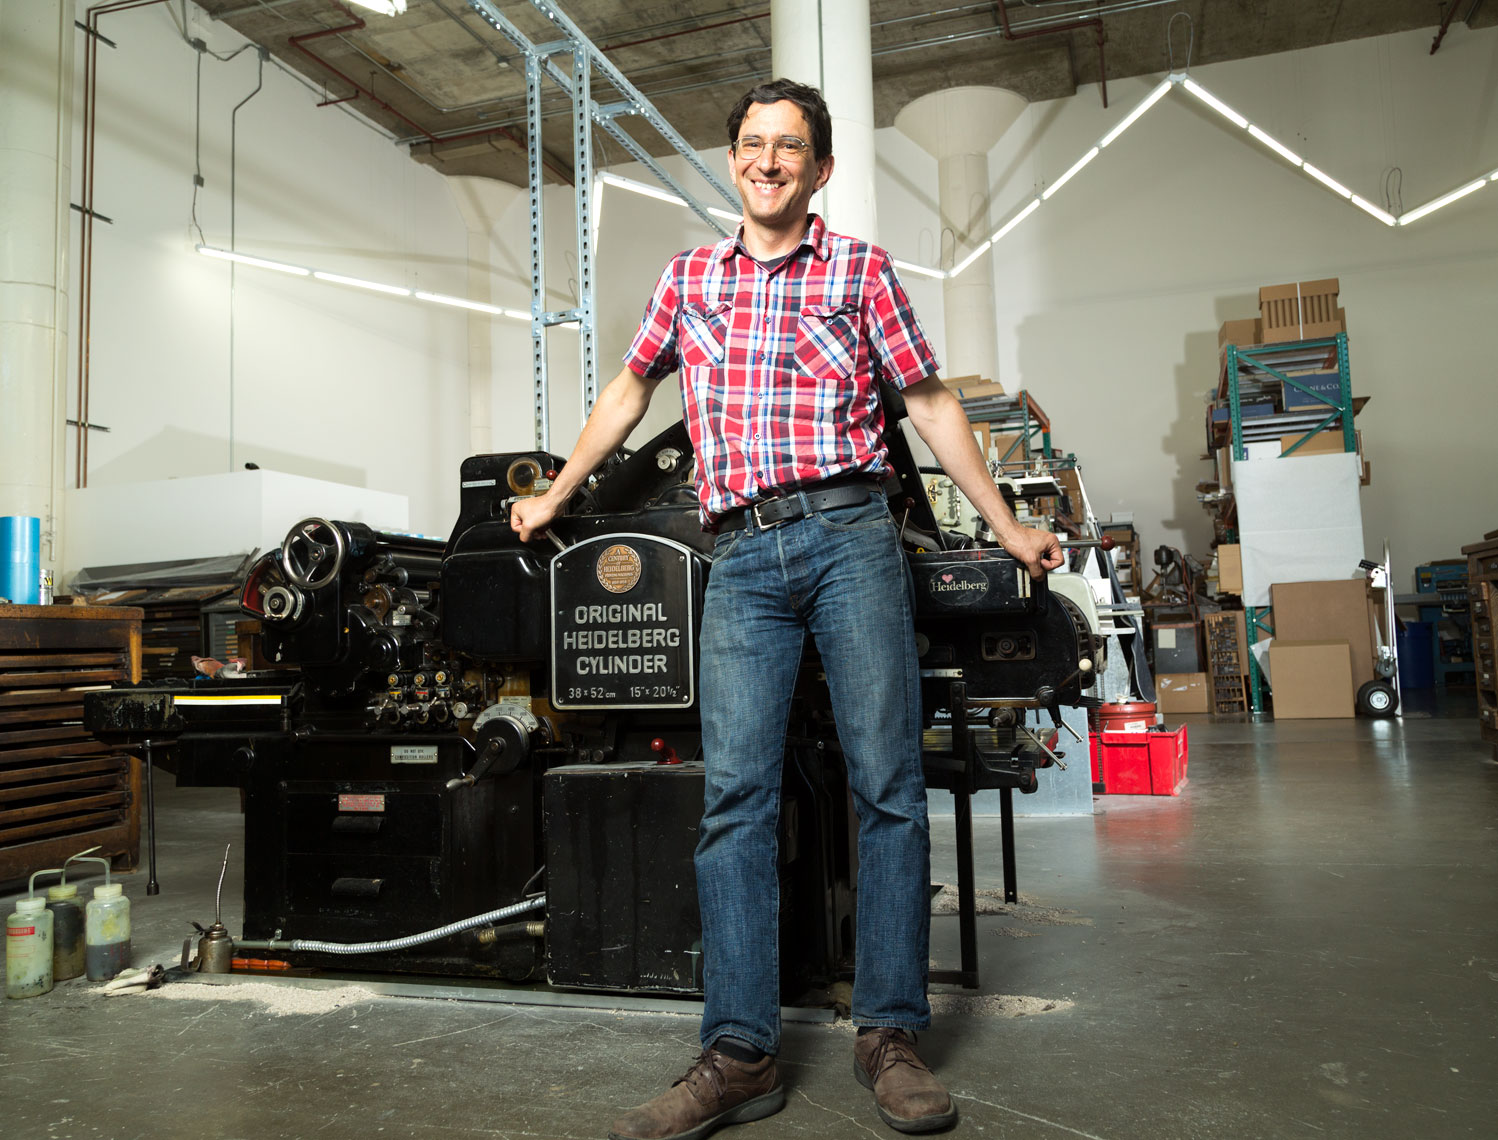 Joel Benson and his Heidelberg Press